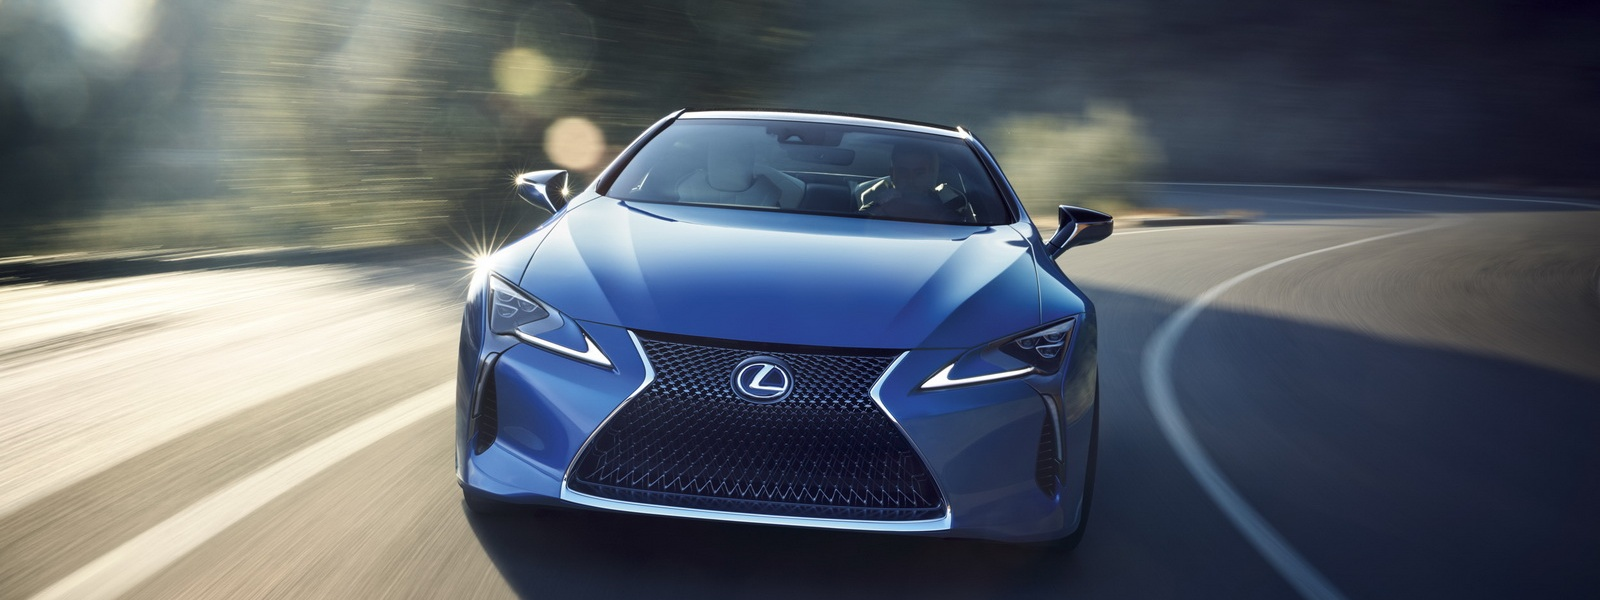 2018-lexus-lc-structural-blue-edition-8.jpg